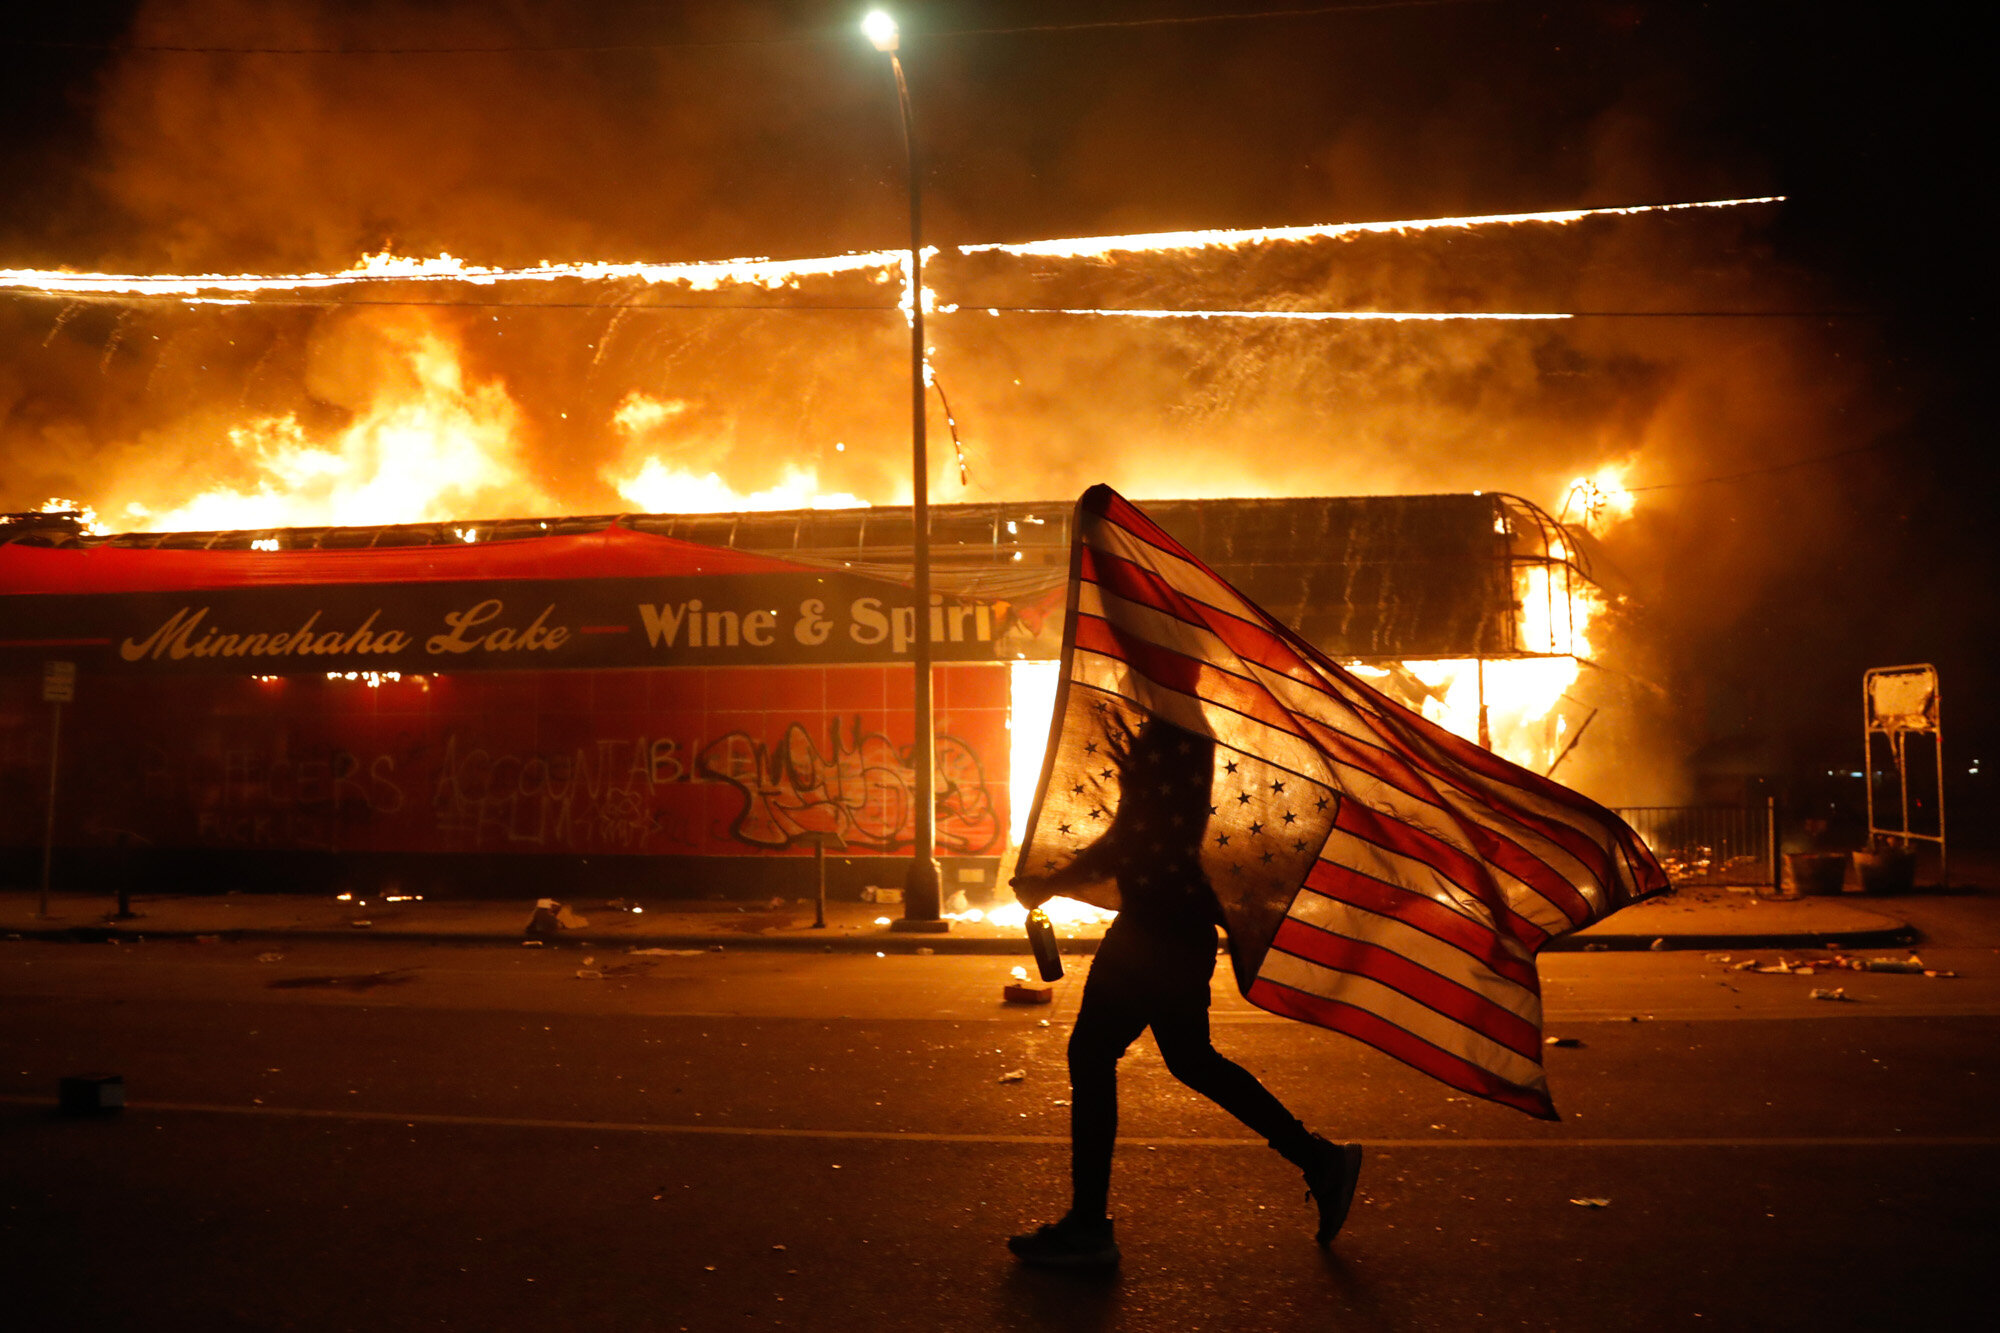 A protester carries a U.S. flag upside down as he walks past a burning building in Minneapolis on May 28, 2020, during a protest over the death of George Floyd, a Black man who died after a white Minneapolis police officer pressed a knee into his neck for several minutes. (AP Photo/Julio Cortez)